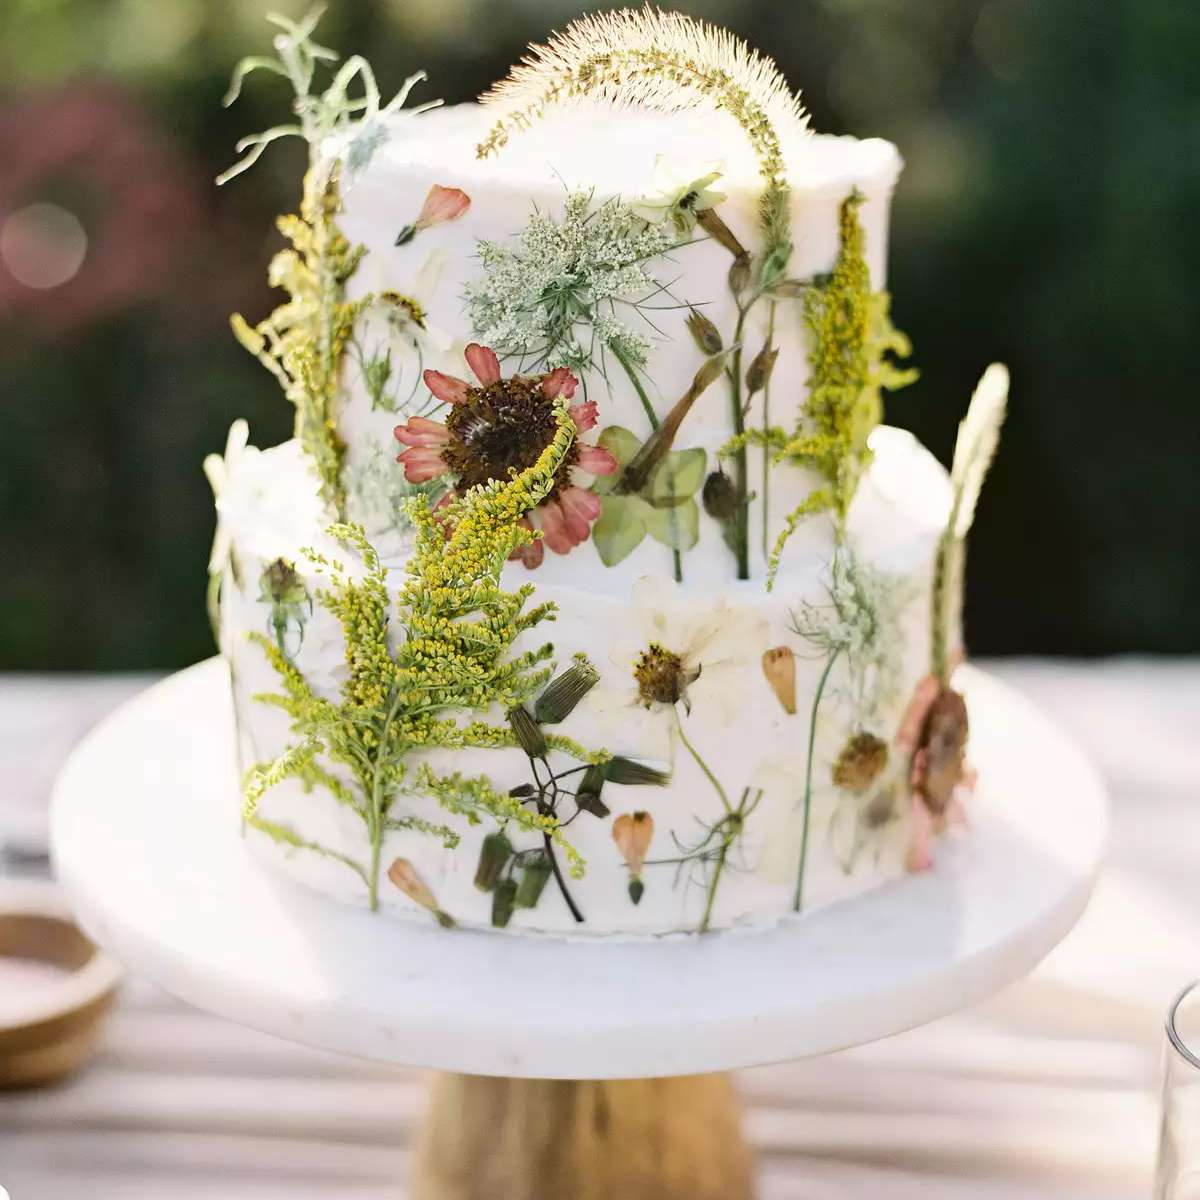 Cake with pressed flowers